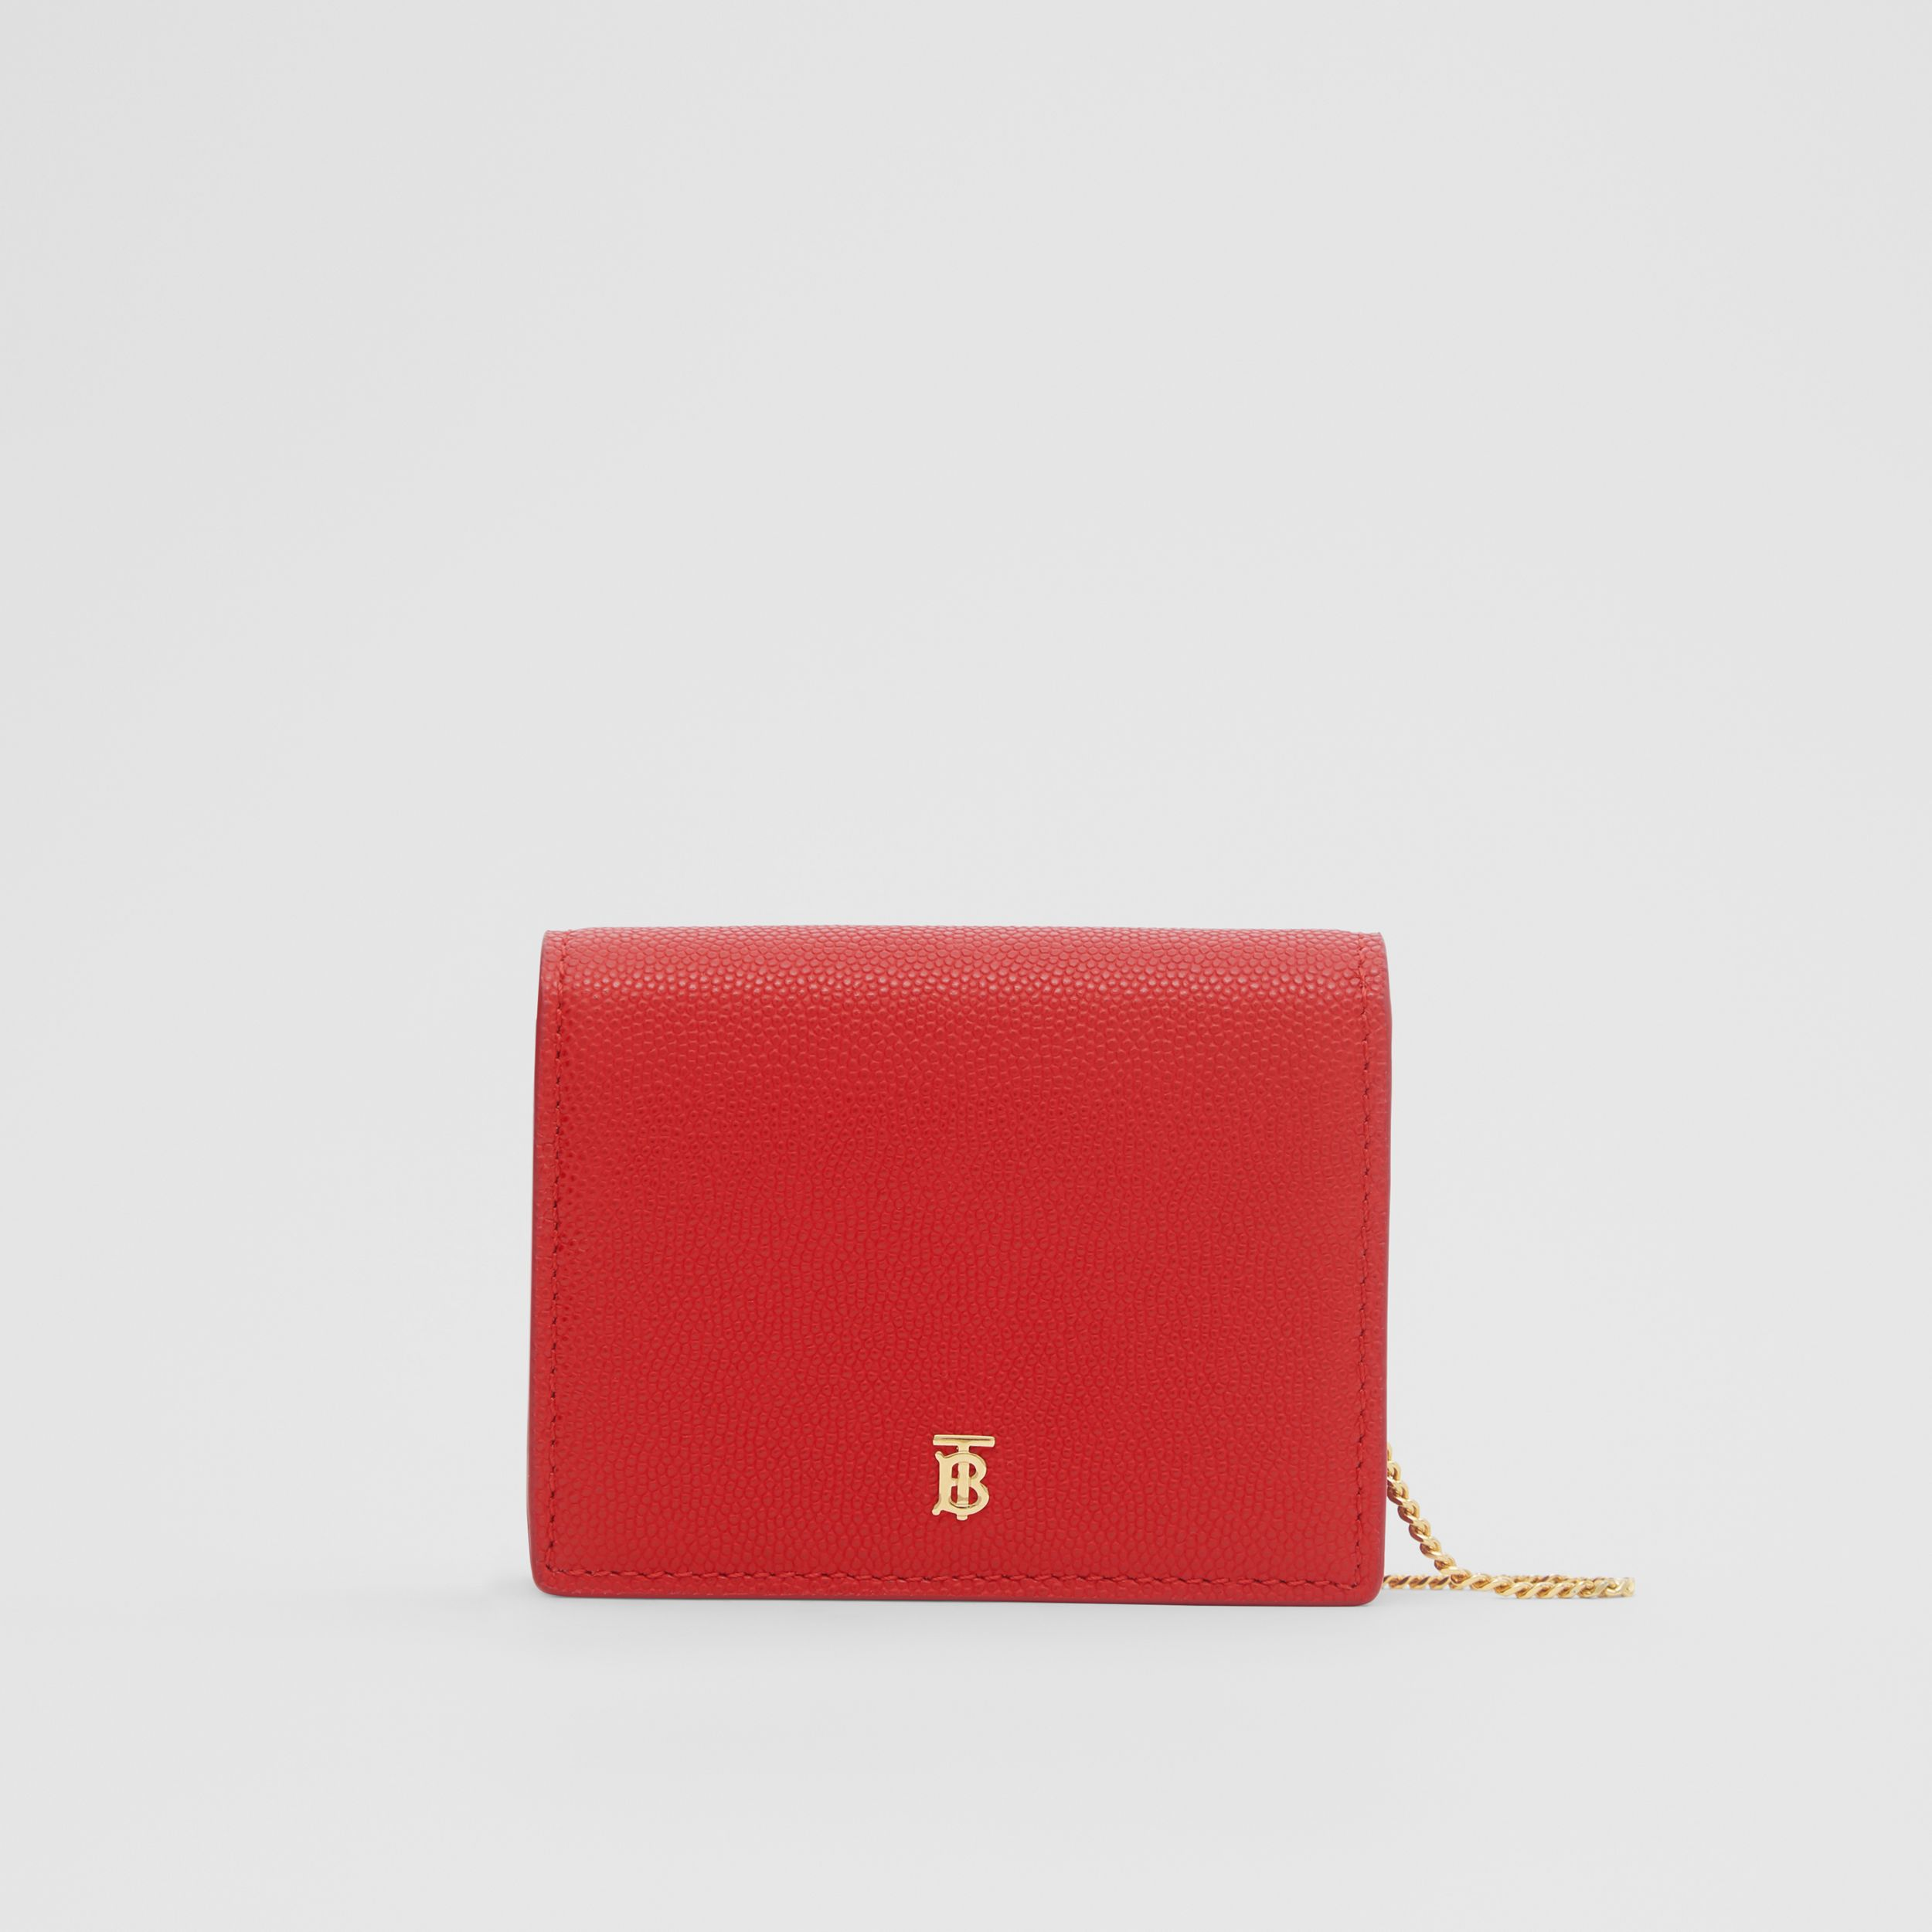 Grainy Leather Card Case with Detachable Strap in Bright Red - Women | Burberry United Kingdom - 1